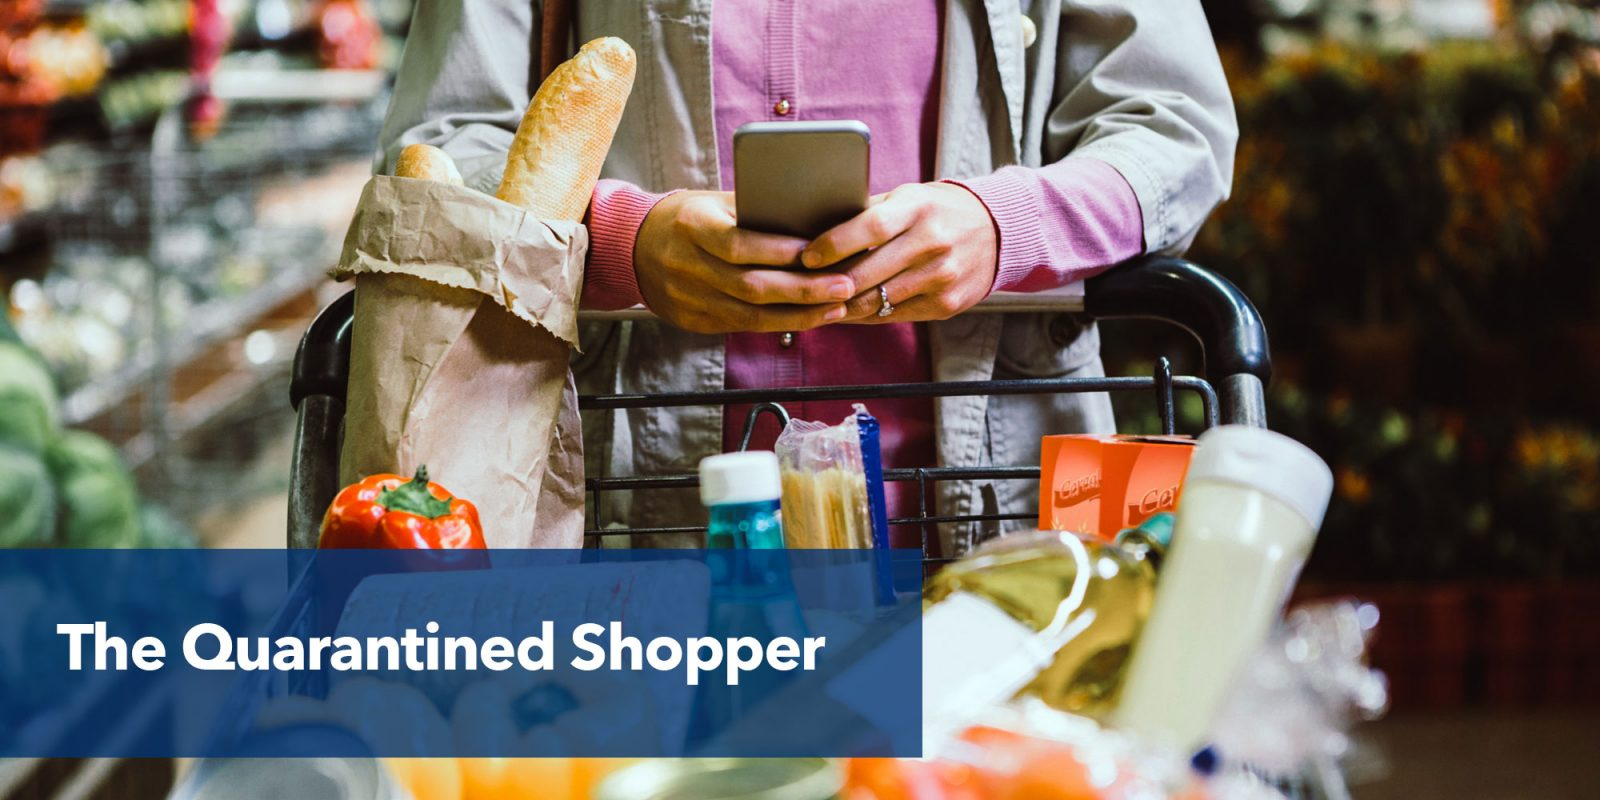 58% of observed in-store shoppers open to new brands.